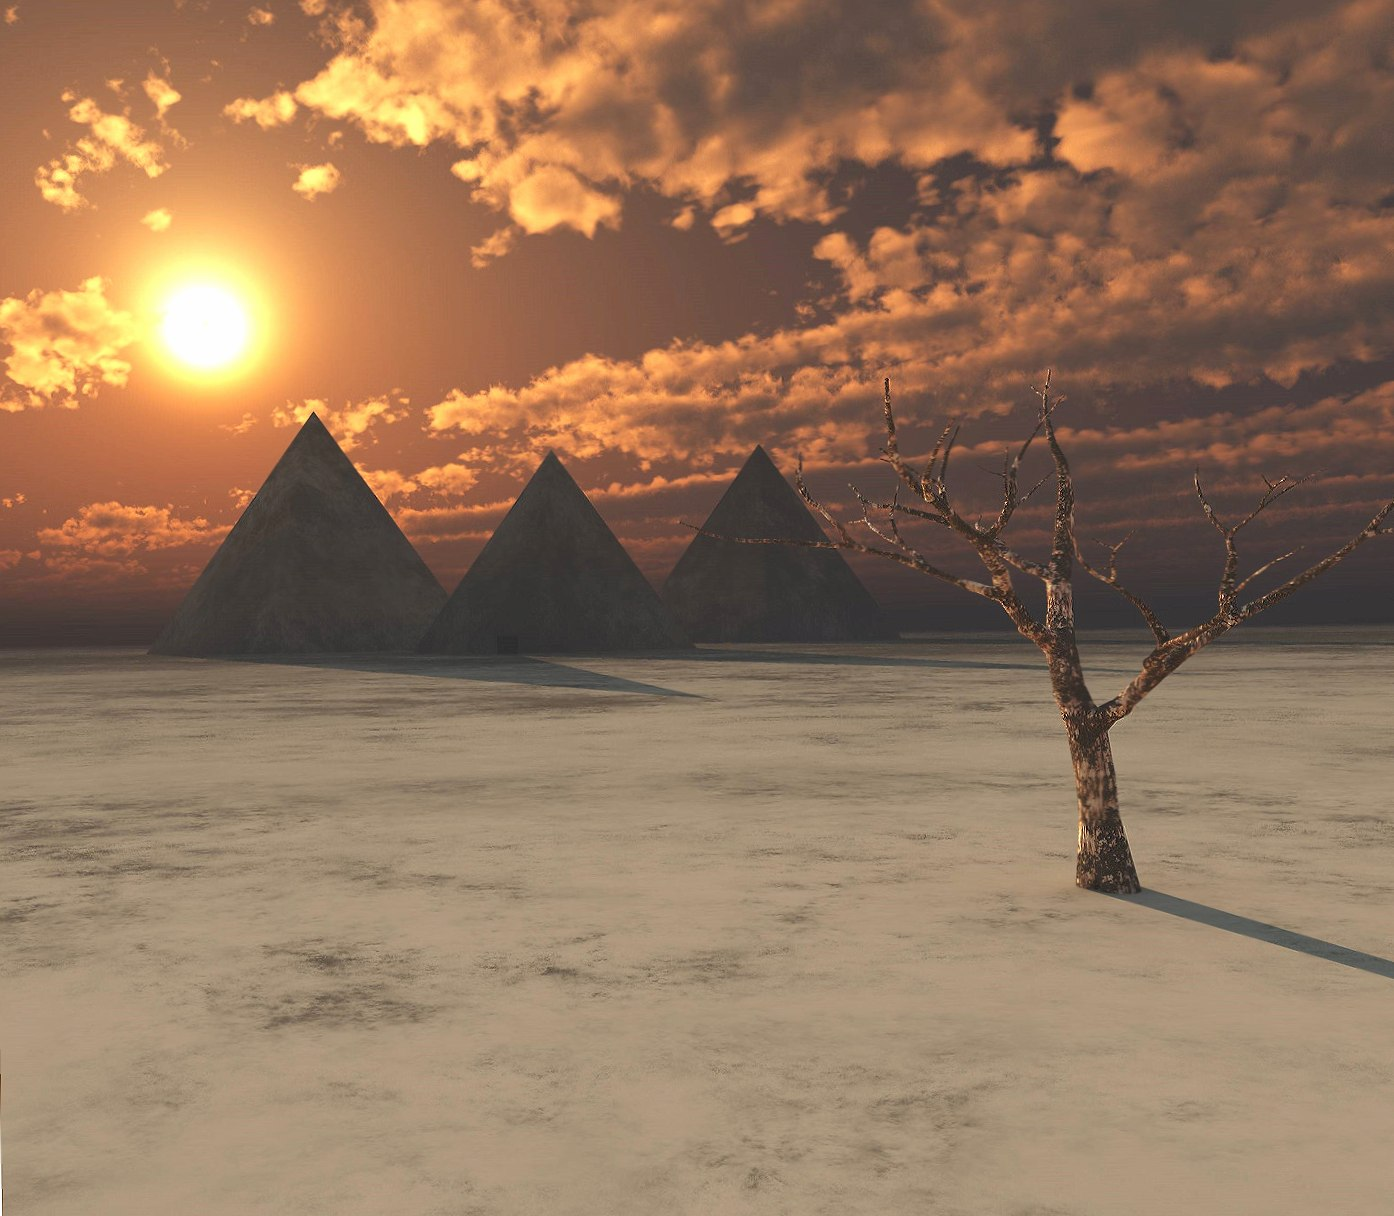 Pyramids wallpapers HD quality